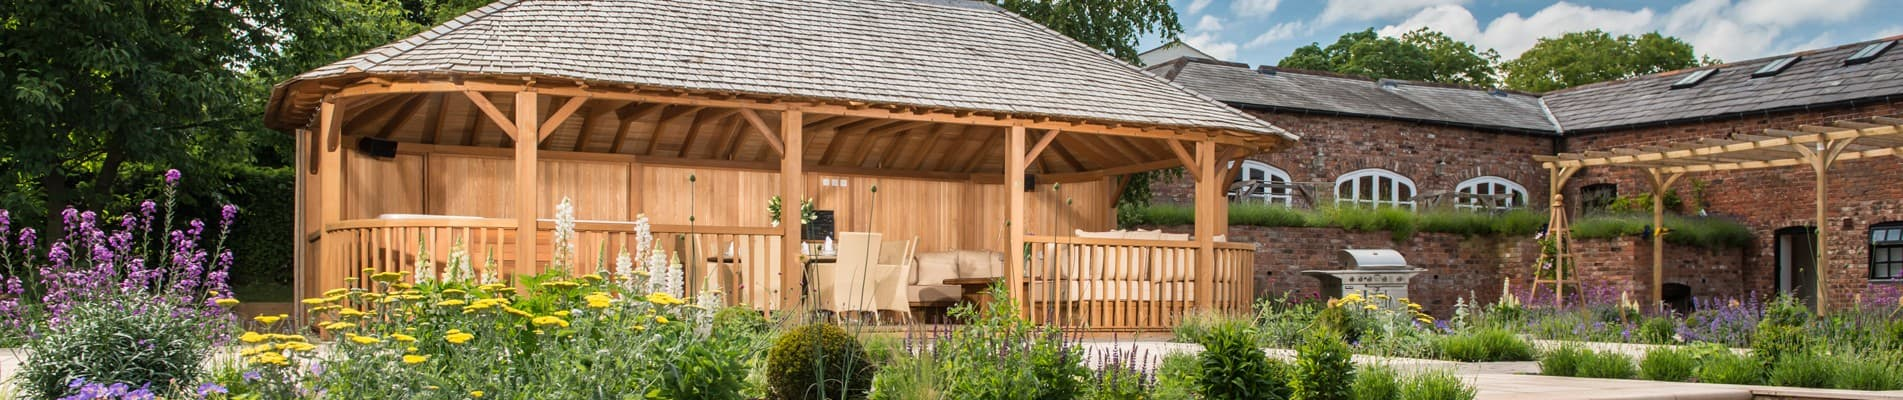 Luxury garden buildings pool houses in oxfordshire for Luxury garden sheds